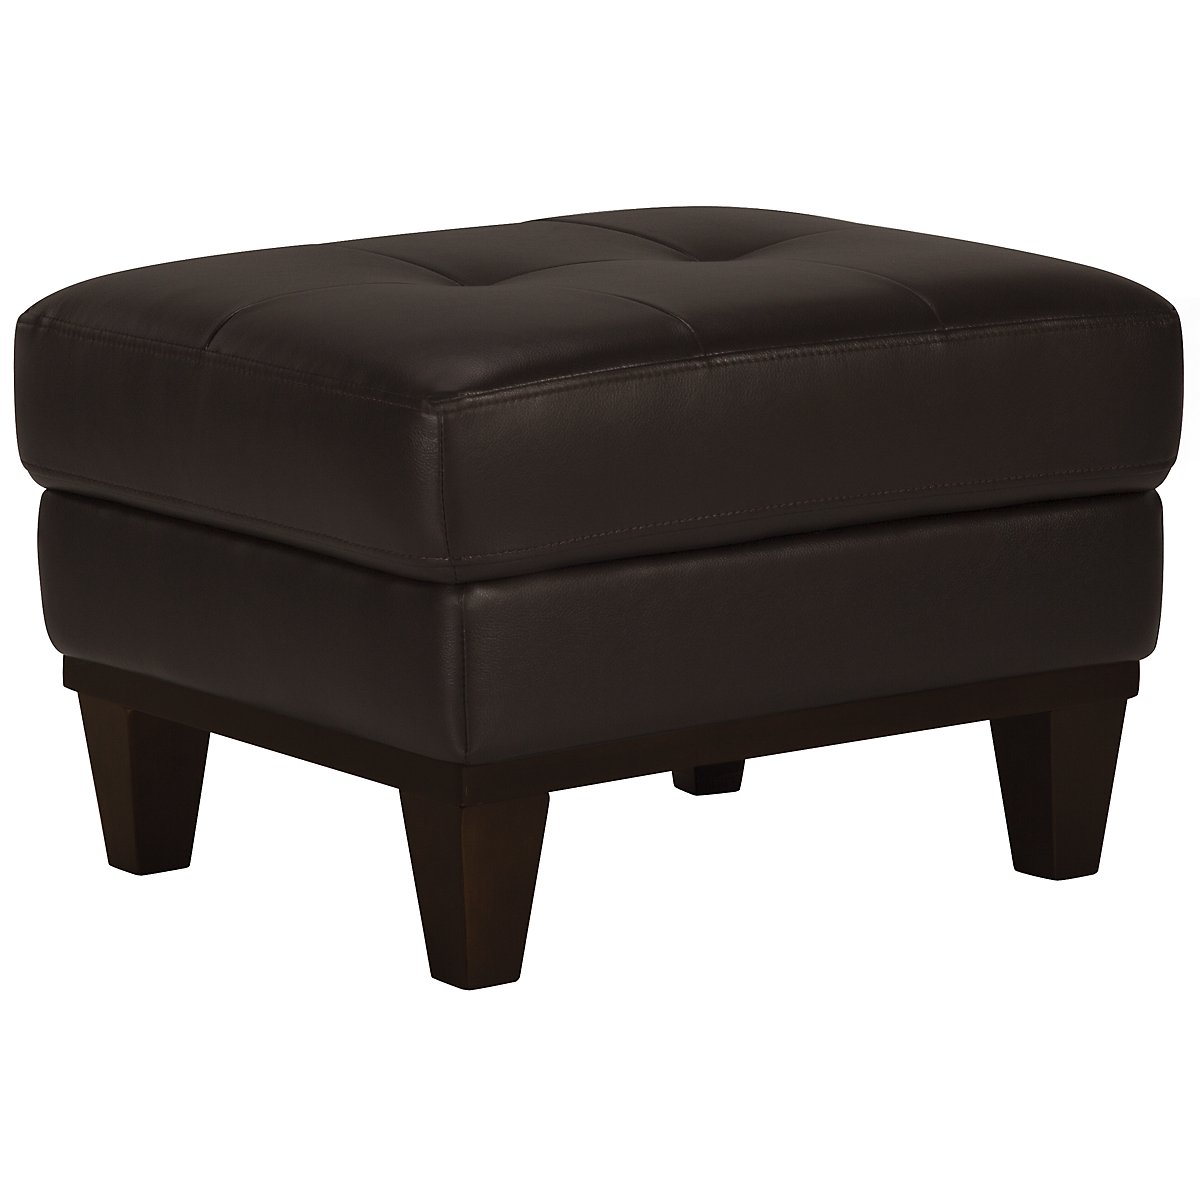 Piper Dk Brown Bonded Leather Ottoman